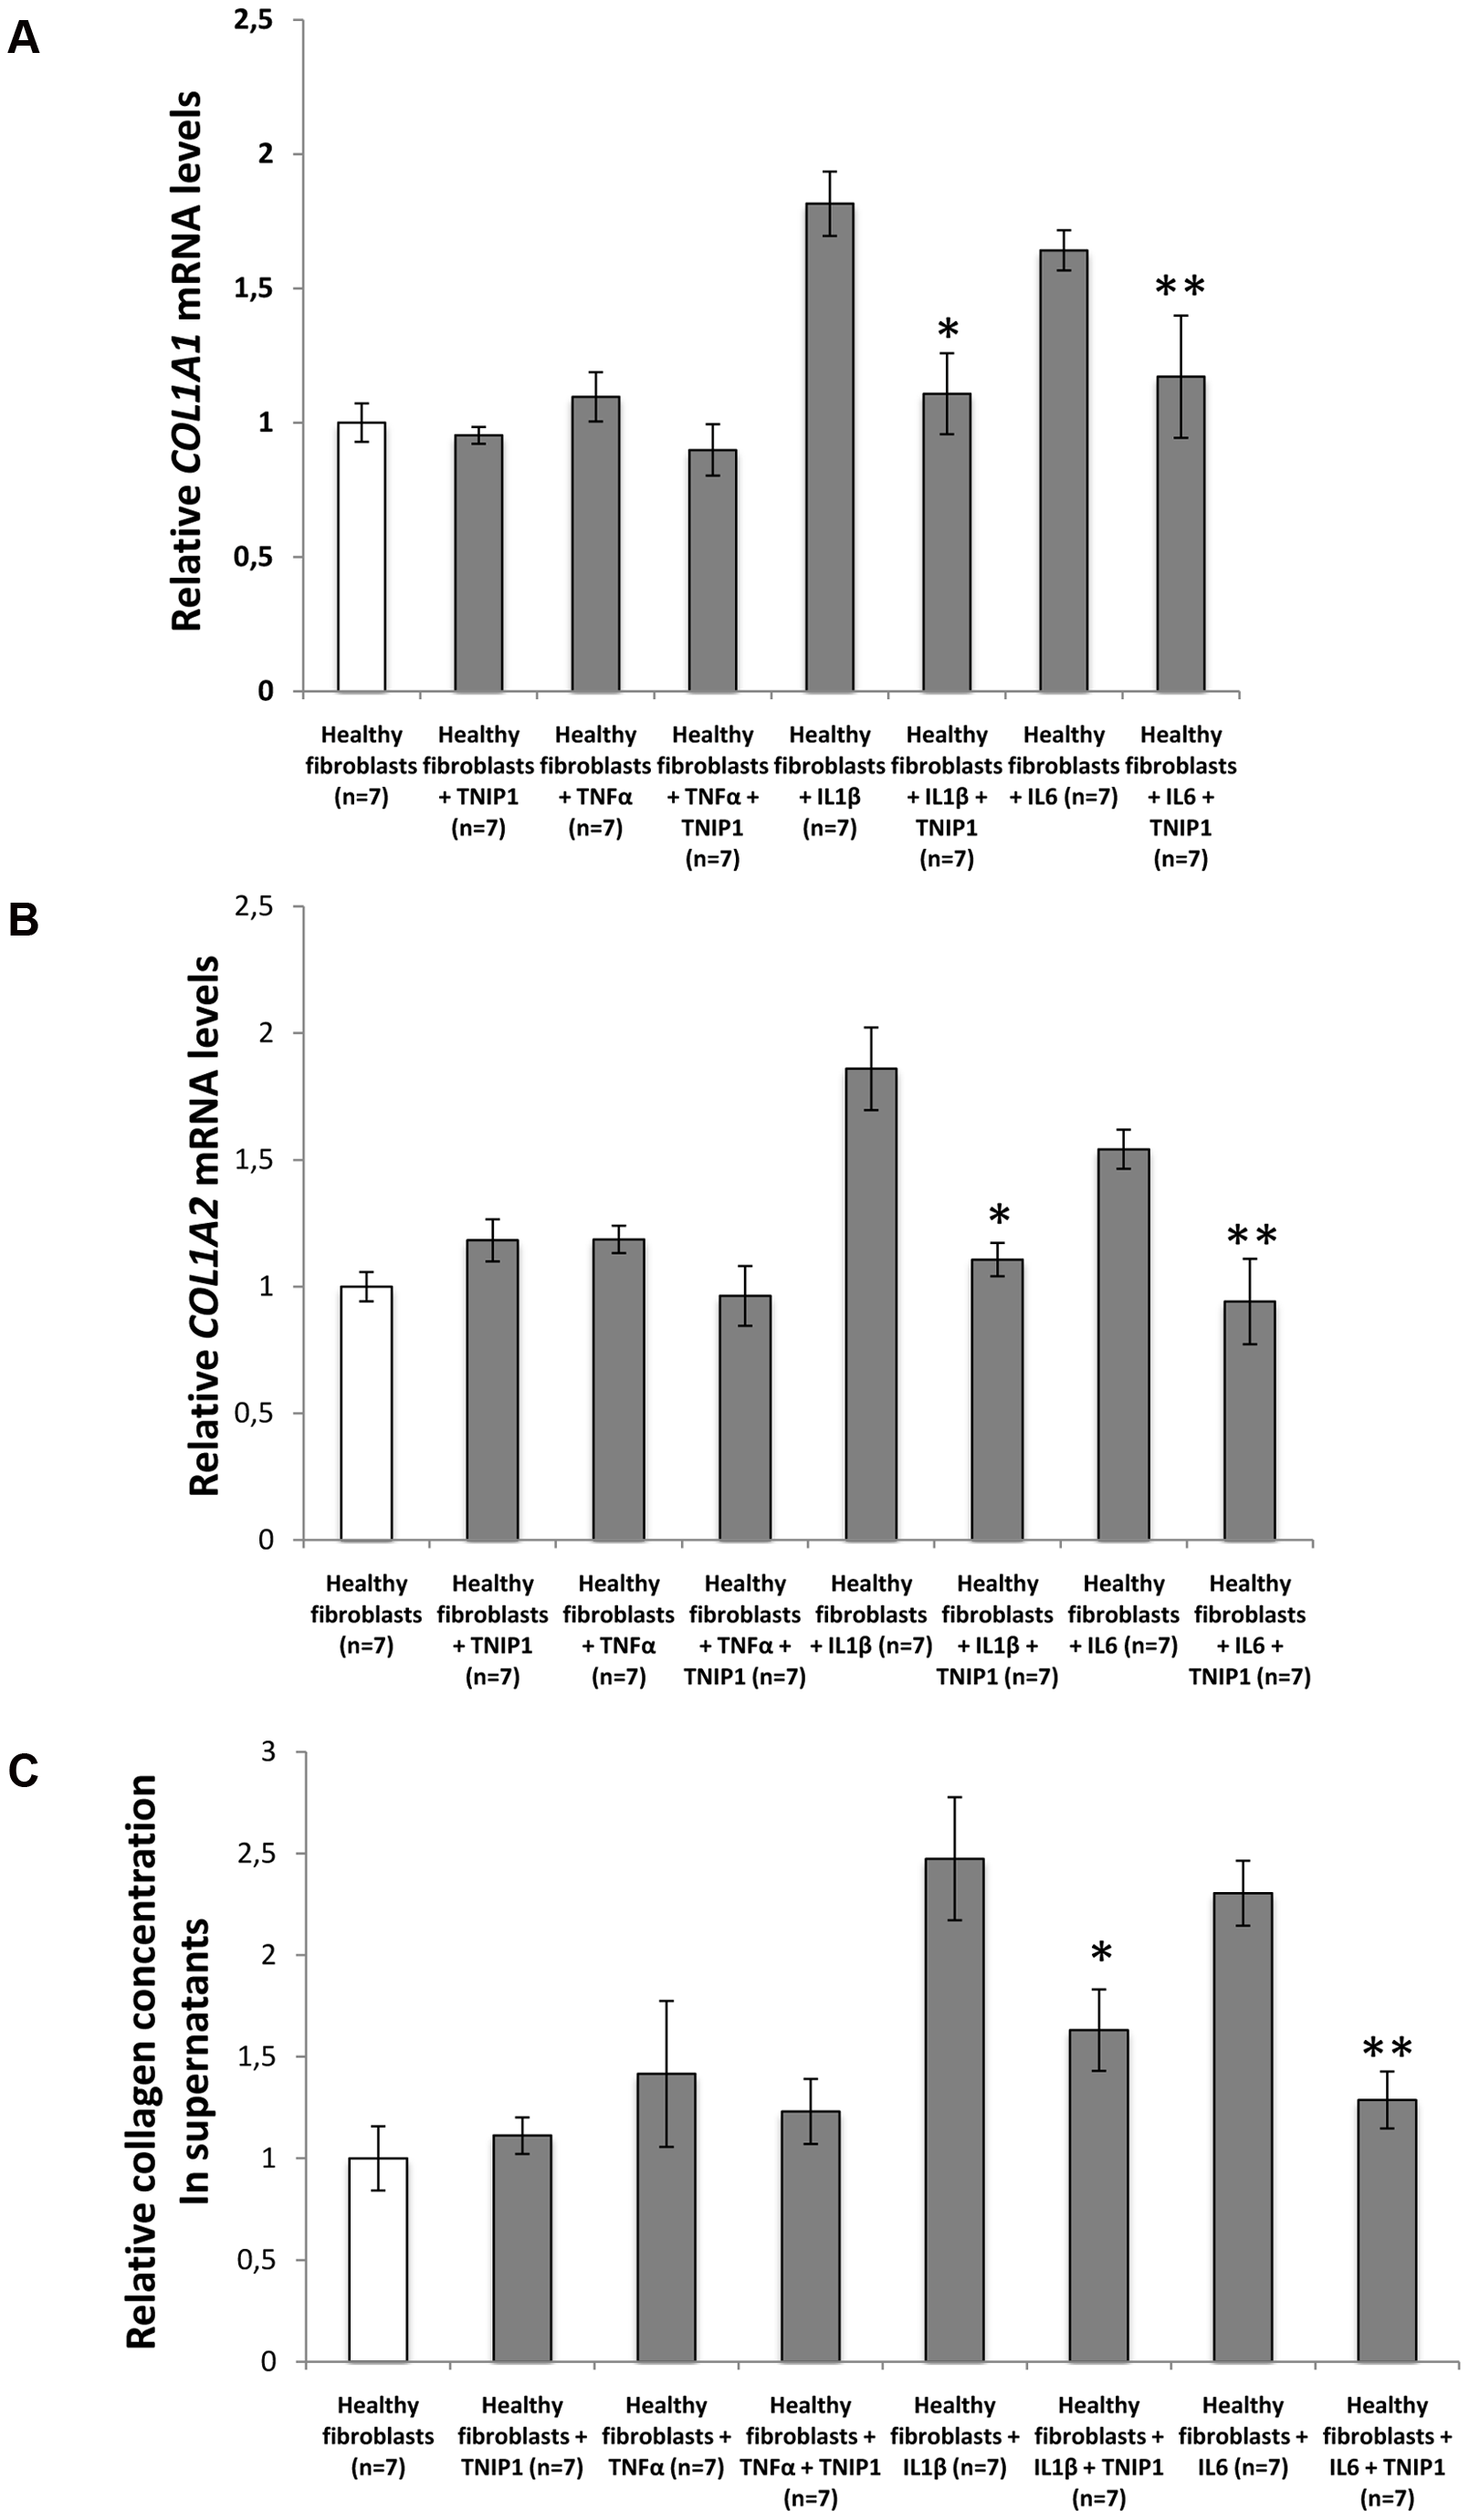 TNIP1 abrogates the profibrotic effects of proinflammatory cytokines on collagen synthesis by healthy fibroblatsts.